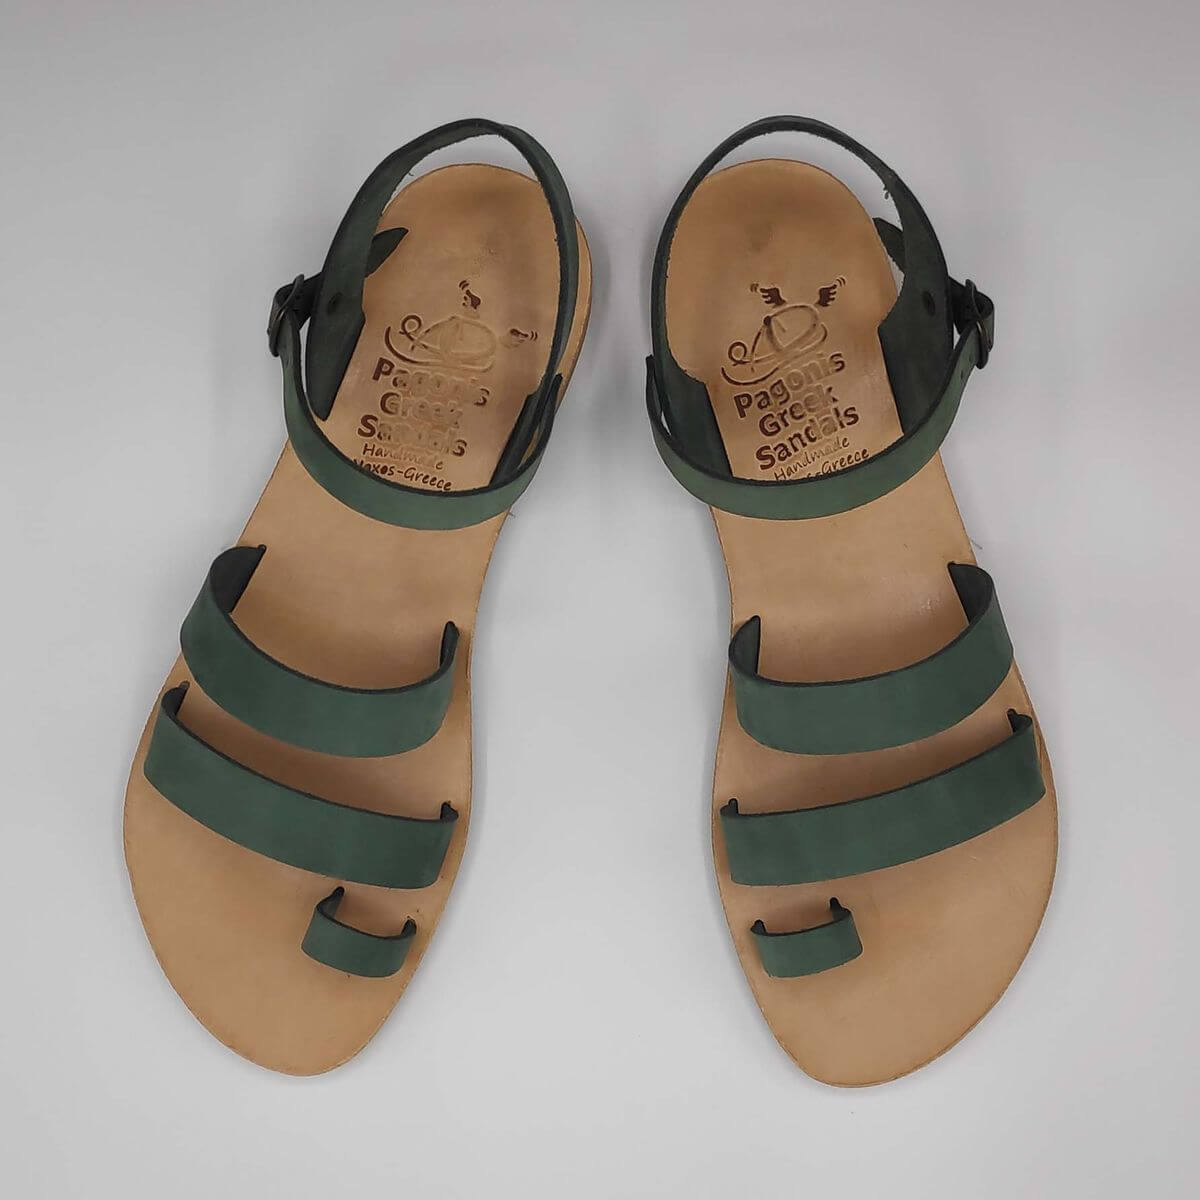 Green nubuck leather dressy sandals with two straps, toe ring and high ankle strap, top view